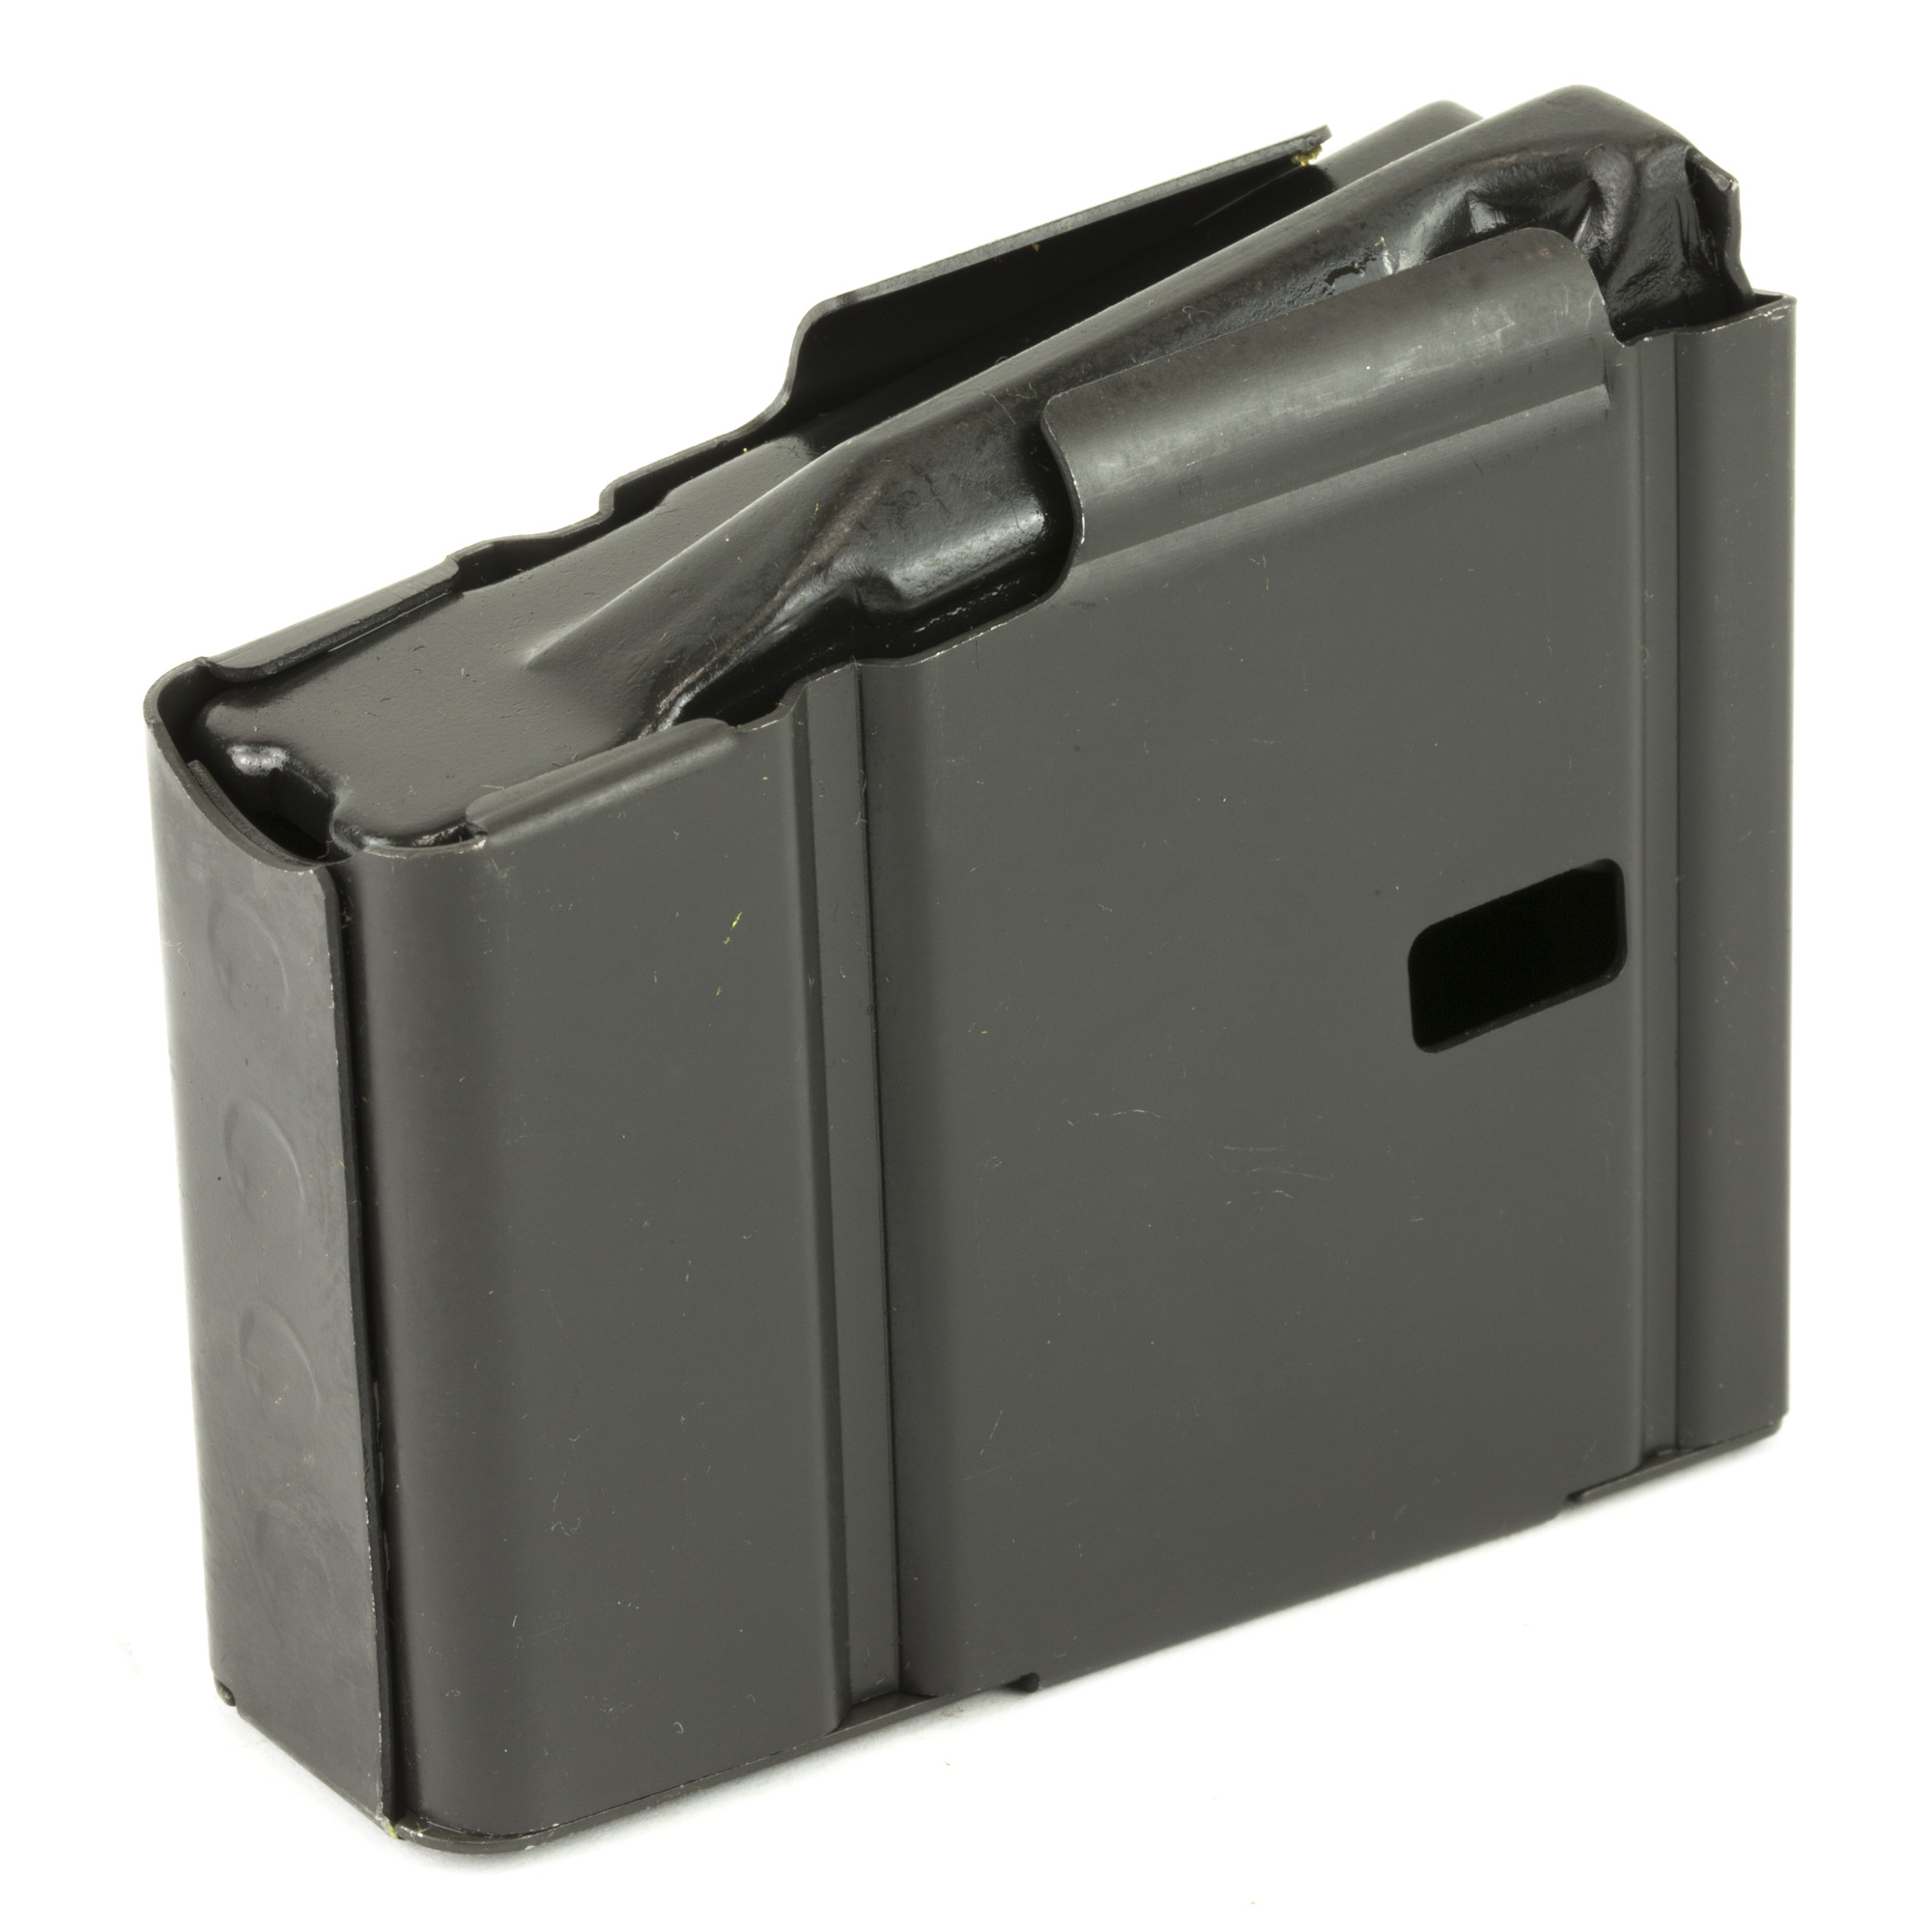 Armalite generation II AR-10 magazines have proven to be a stunning success. Armalite now offers a full range of these fine magazines from 5 to 25 round capacity; covering all uses from big game hunting to hard military or Law Enforcement use.